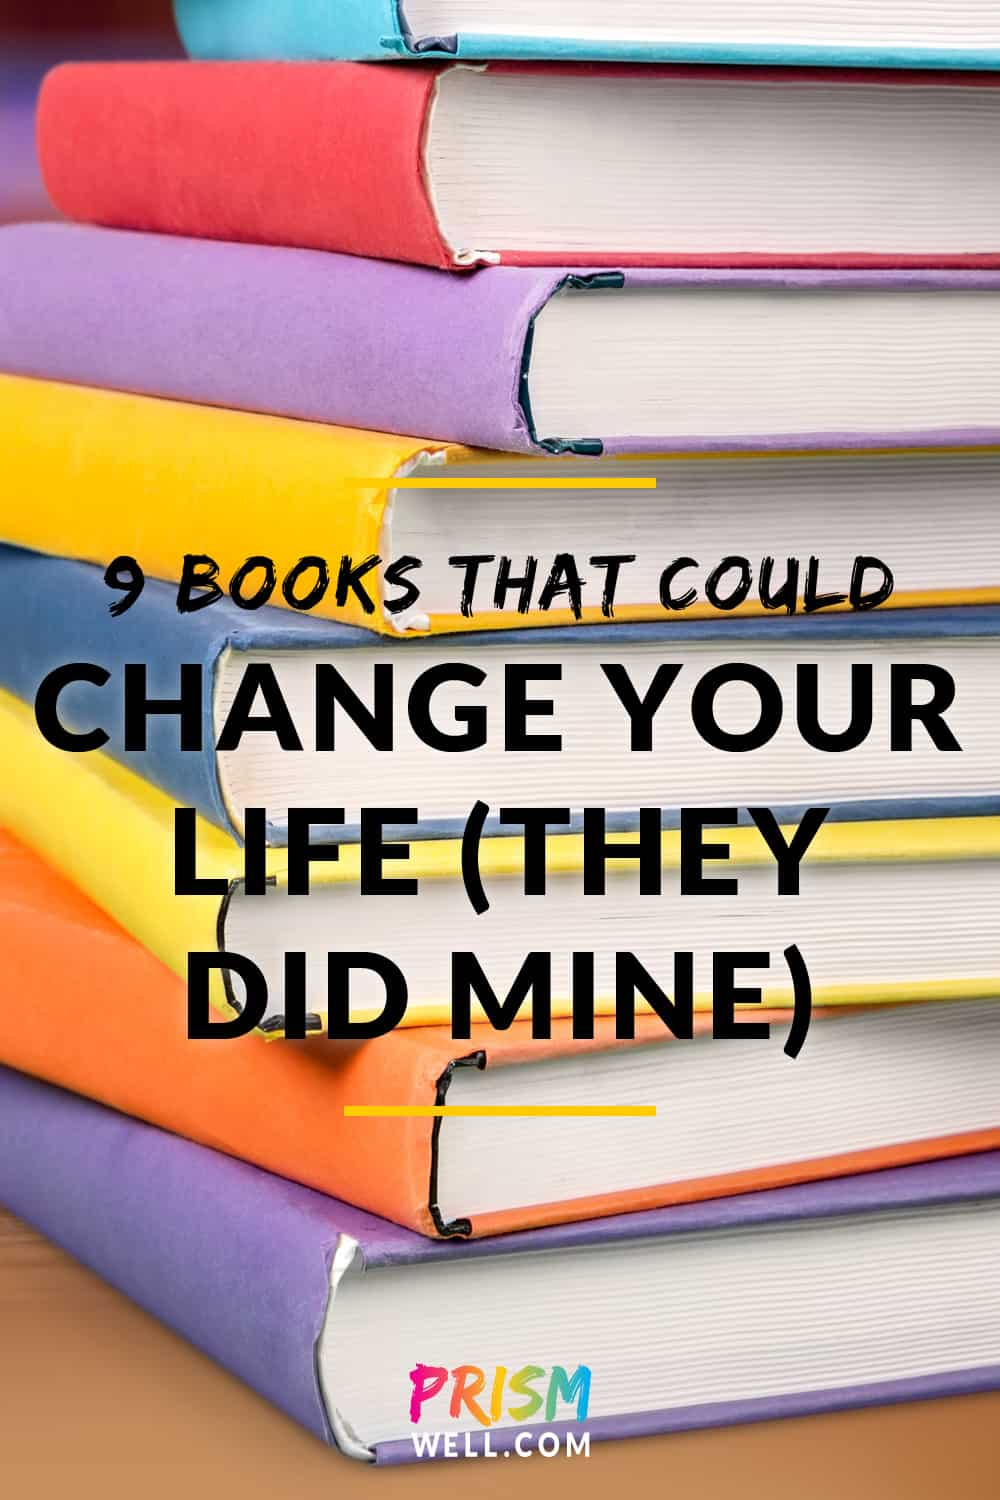 When I began my journey from Debbie Downer to Mary Poppins hopeful (a journey I am still very much on), these were the books that helped me change my life. If you're looking to improve your outlook, I'll tell you why each one has been meaningful to me and why I think it might help you.